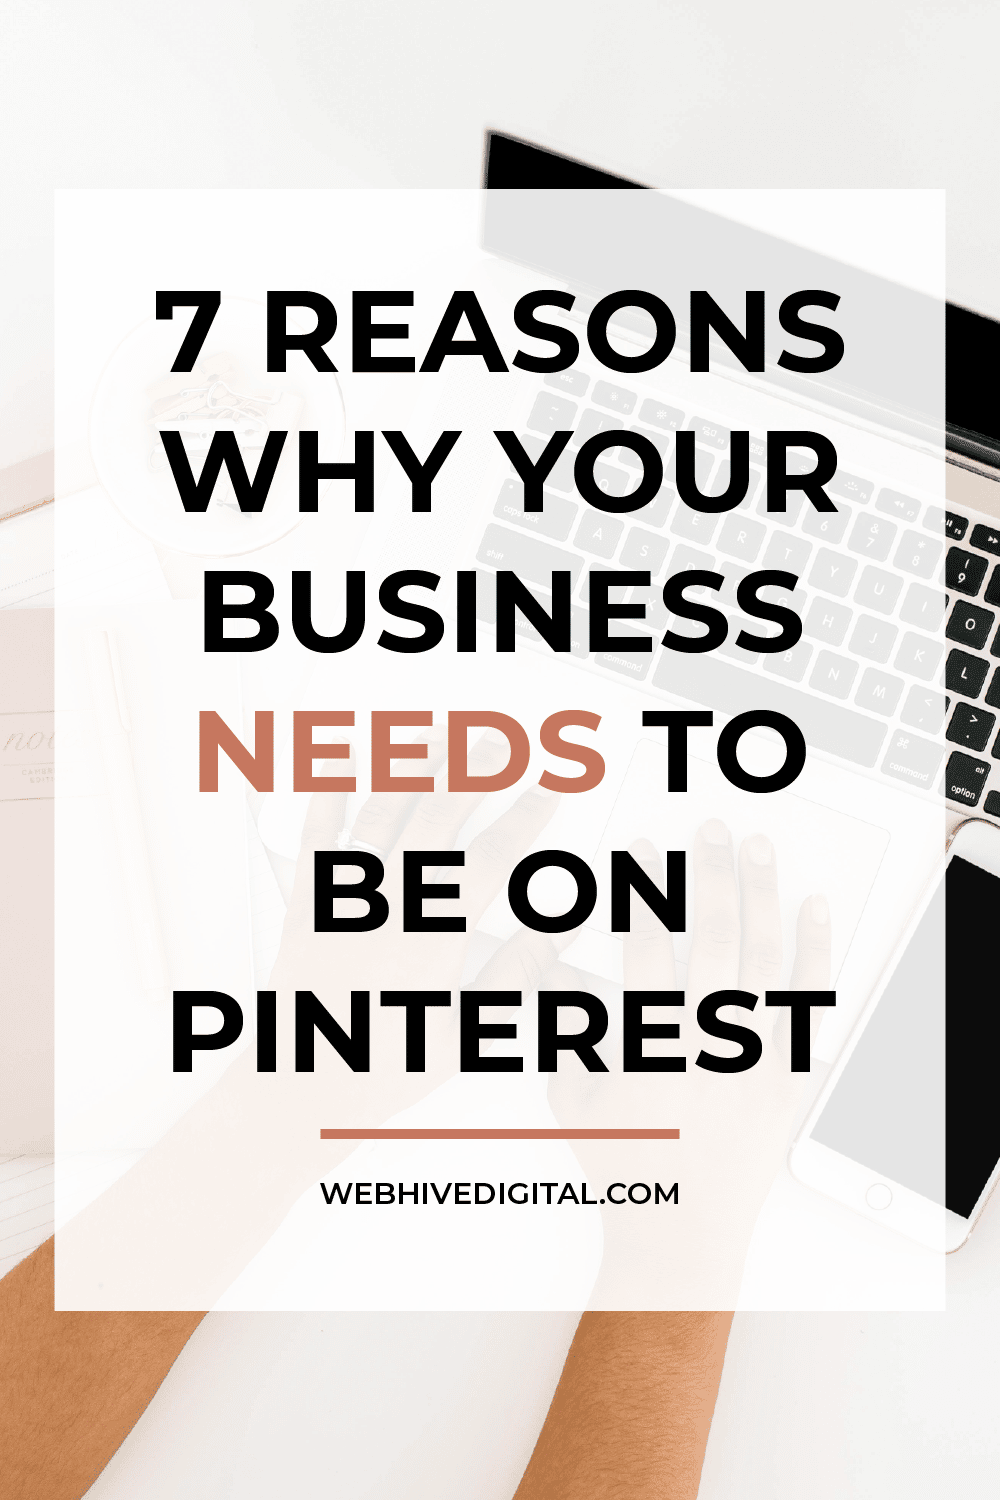 7 Reasons Why Your Business Needs to be on Pinterest